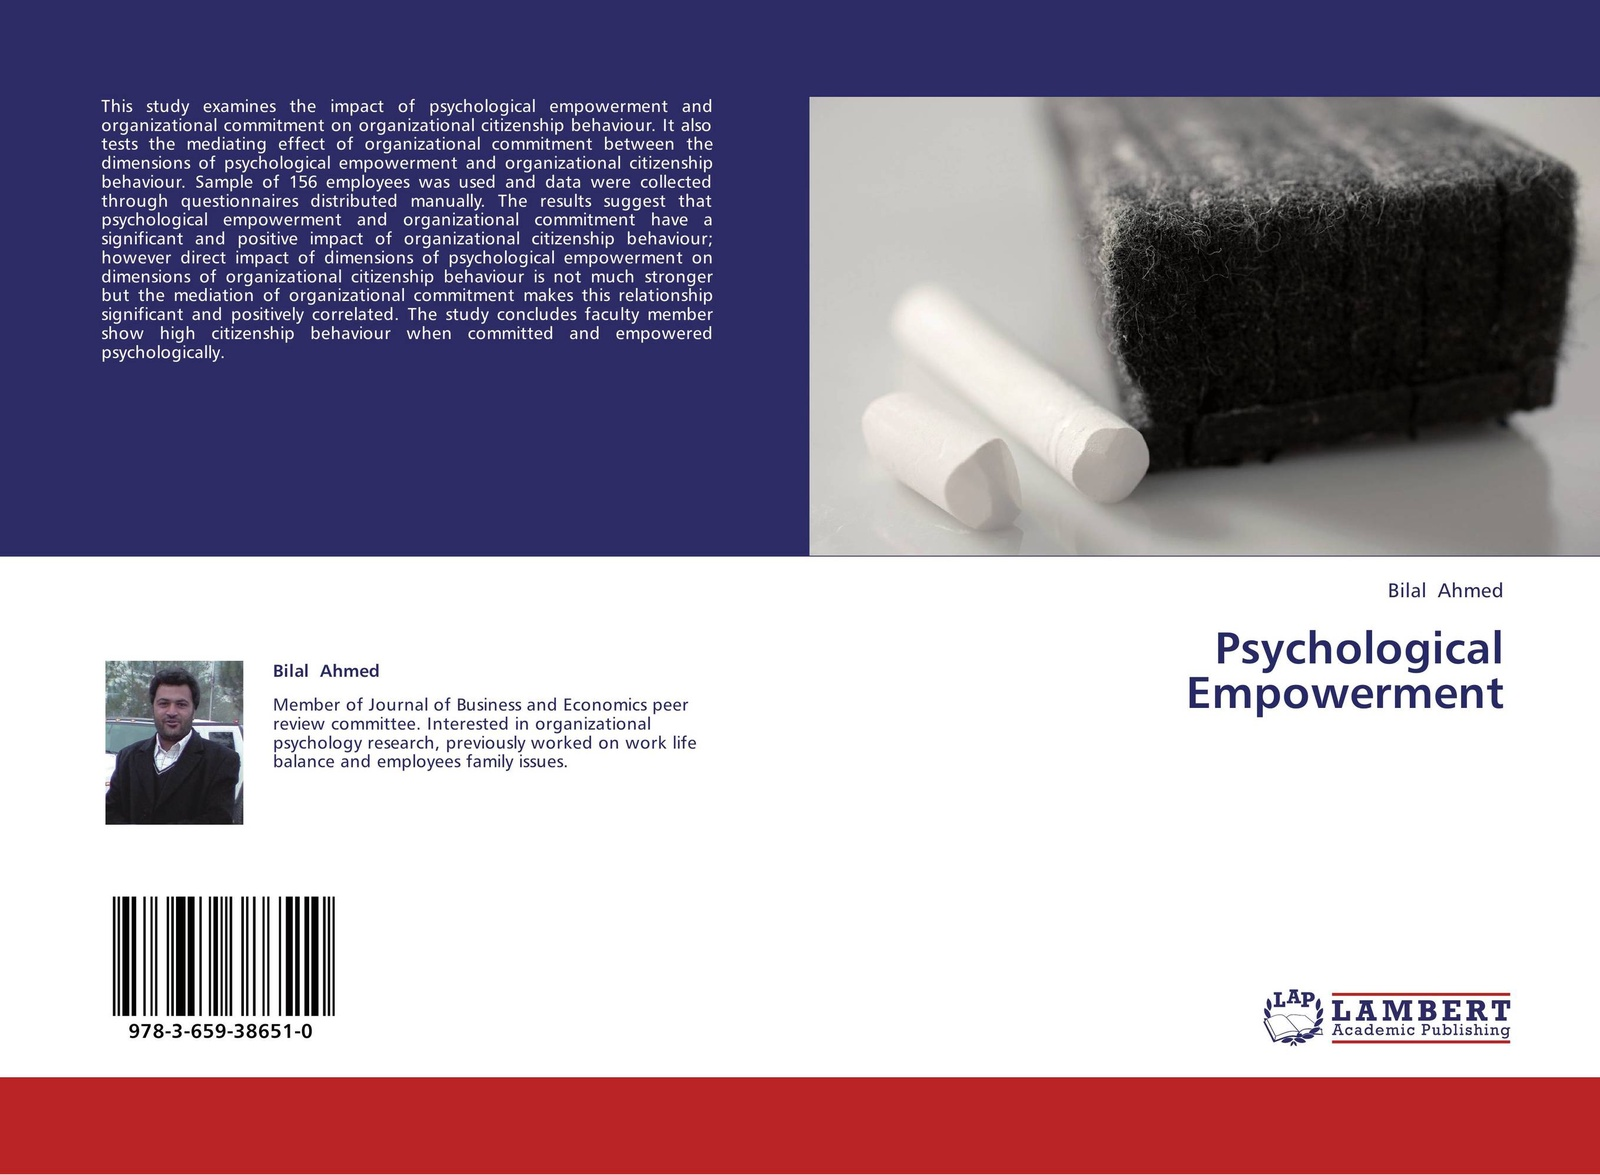 BILAL AHMED Psychological Empowerment employeeship and organizational excellence